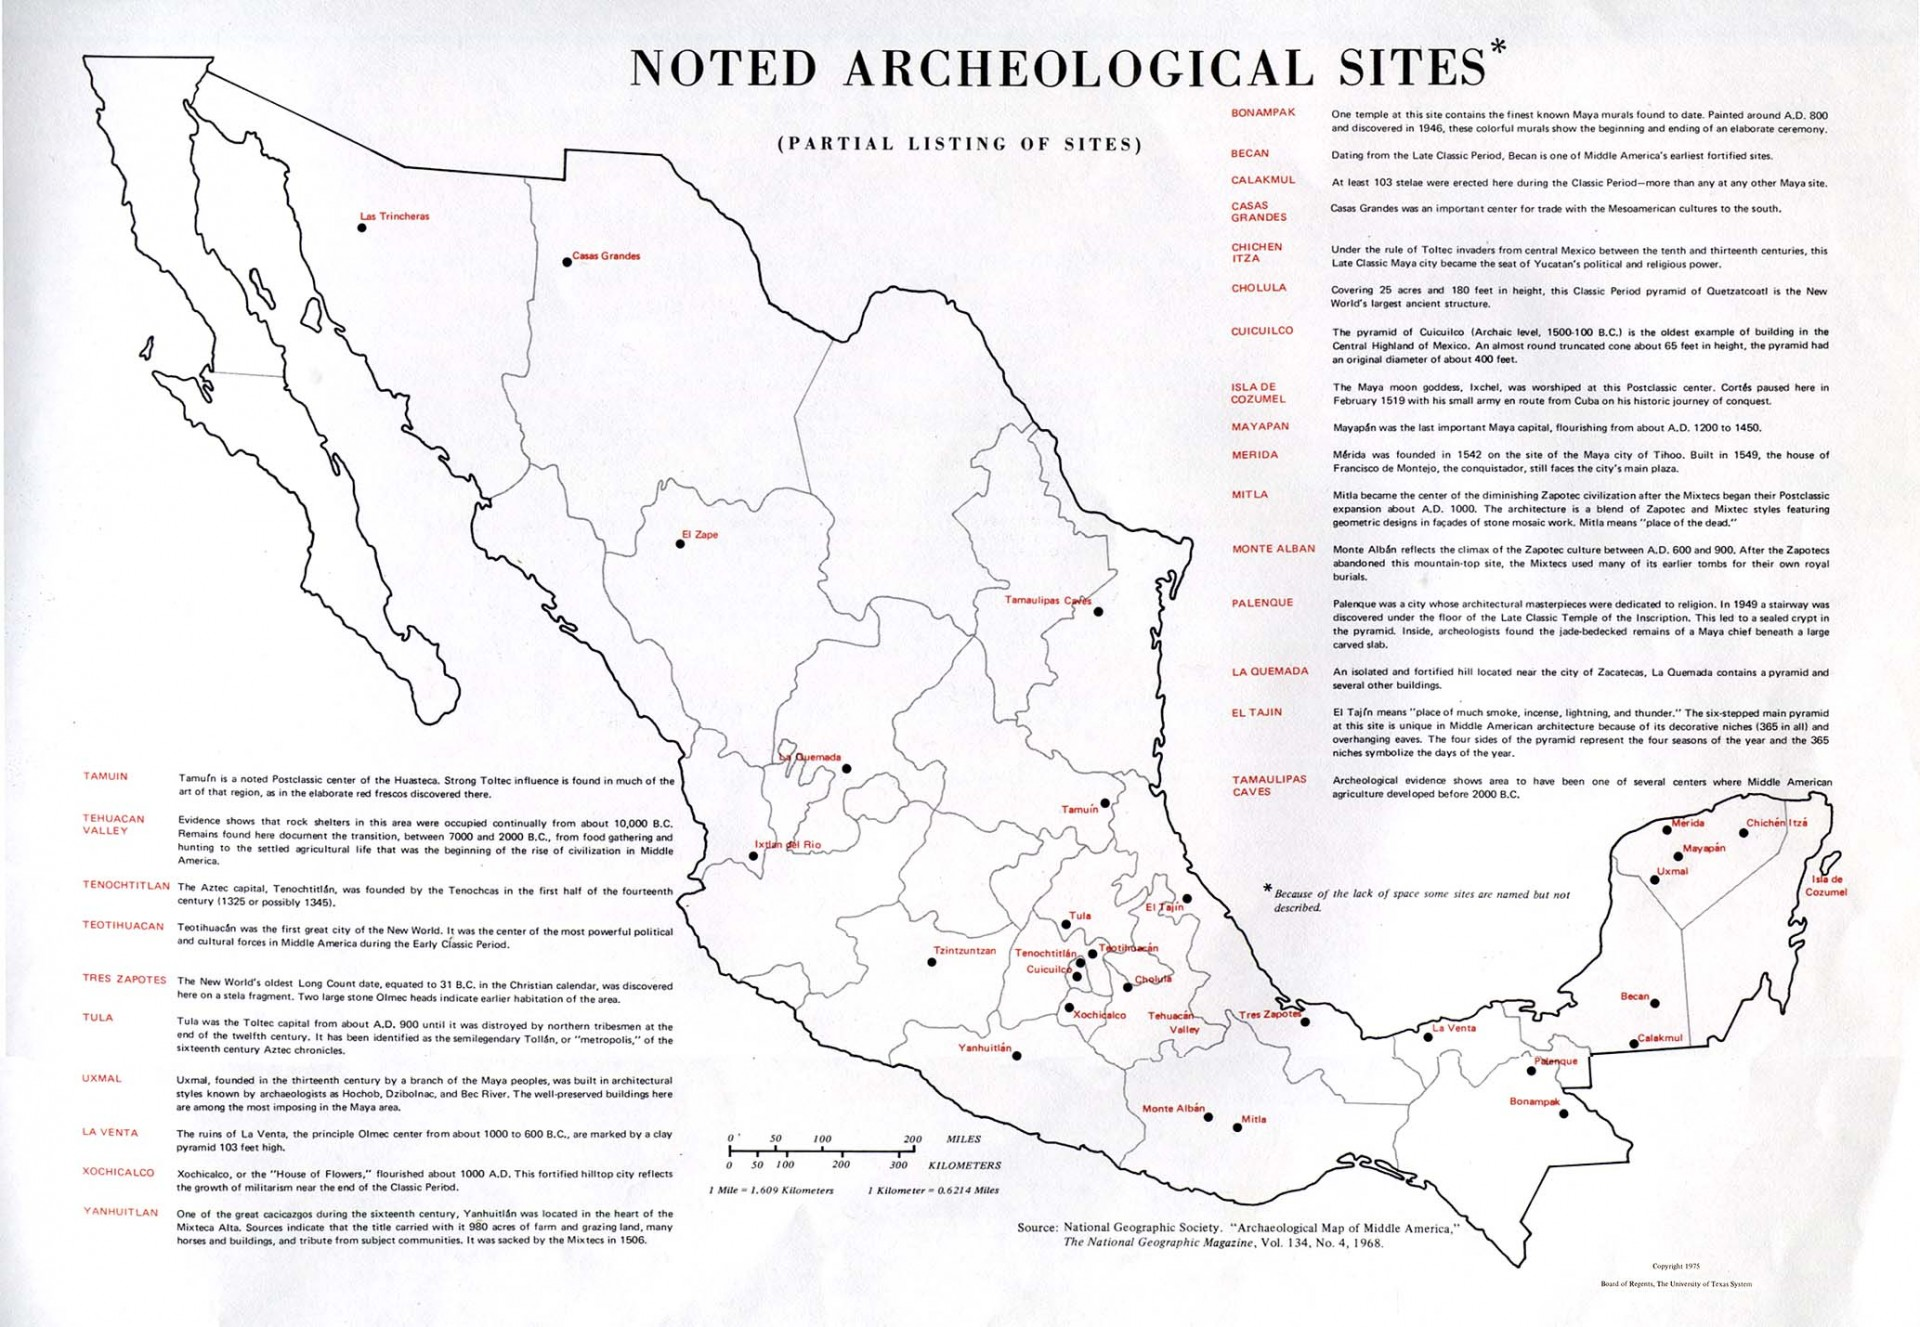 025 Research Paper Noted Archeological Sites In Mexico Good Topics For World History Impressive Papers 1920